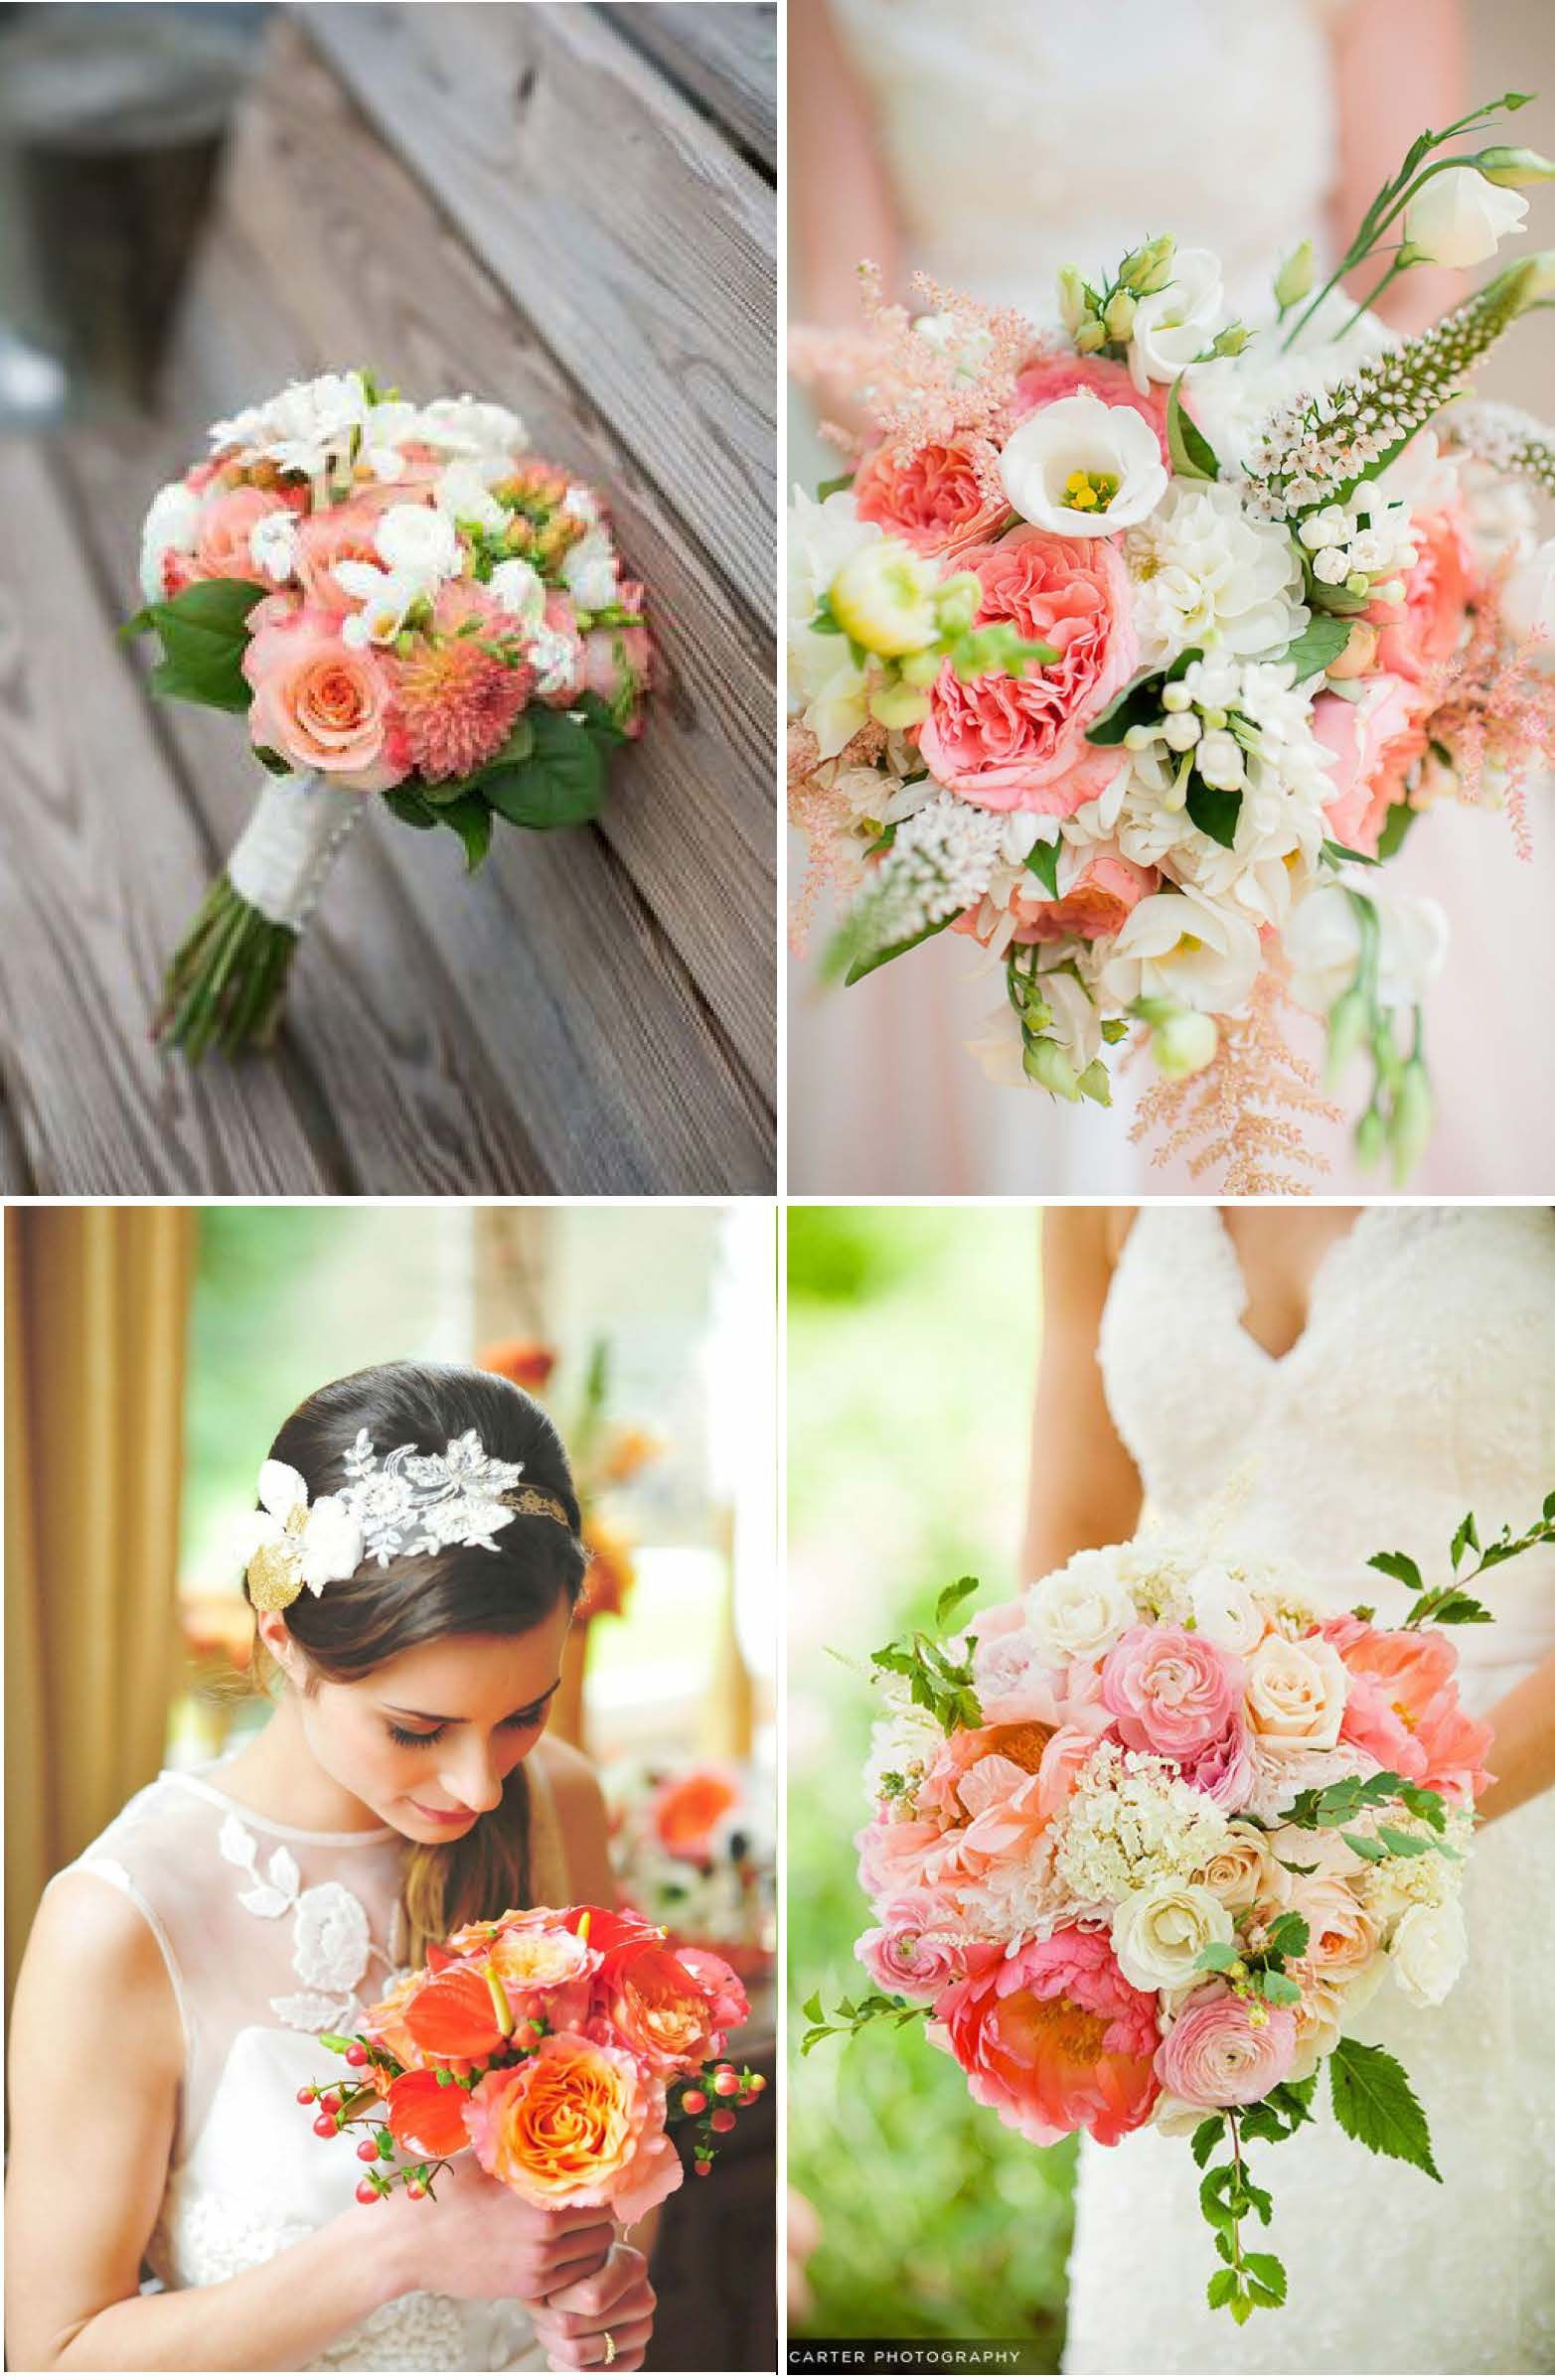 Pin By Tonya Mcnaughton On Weddings Wedding Wedding Flowers